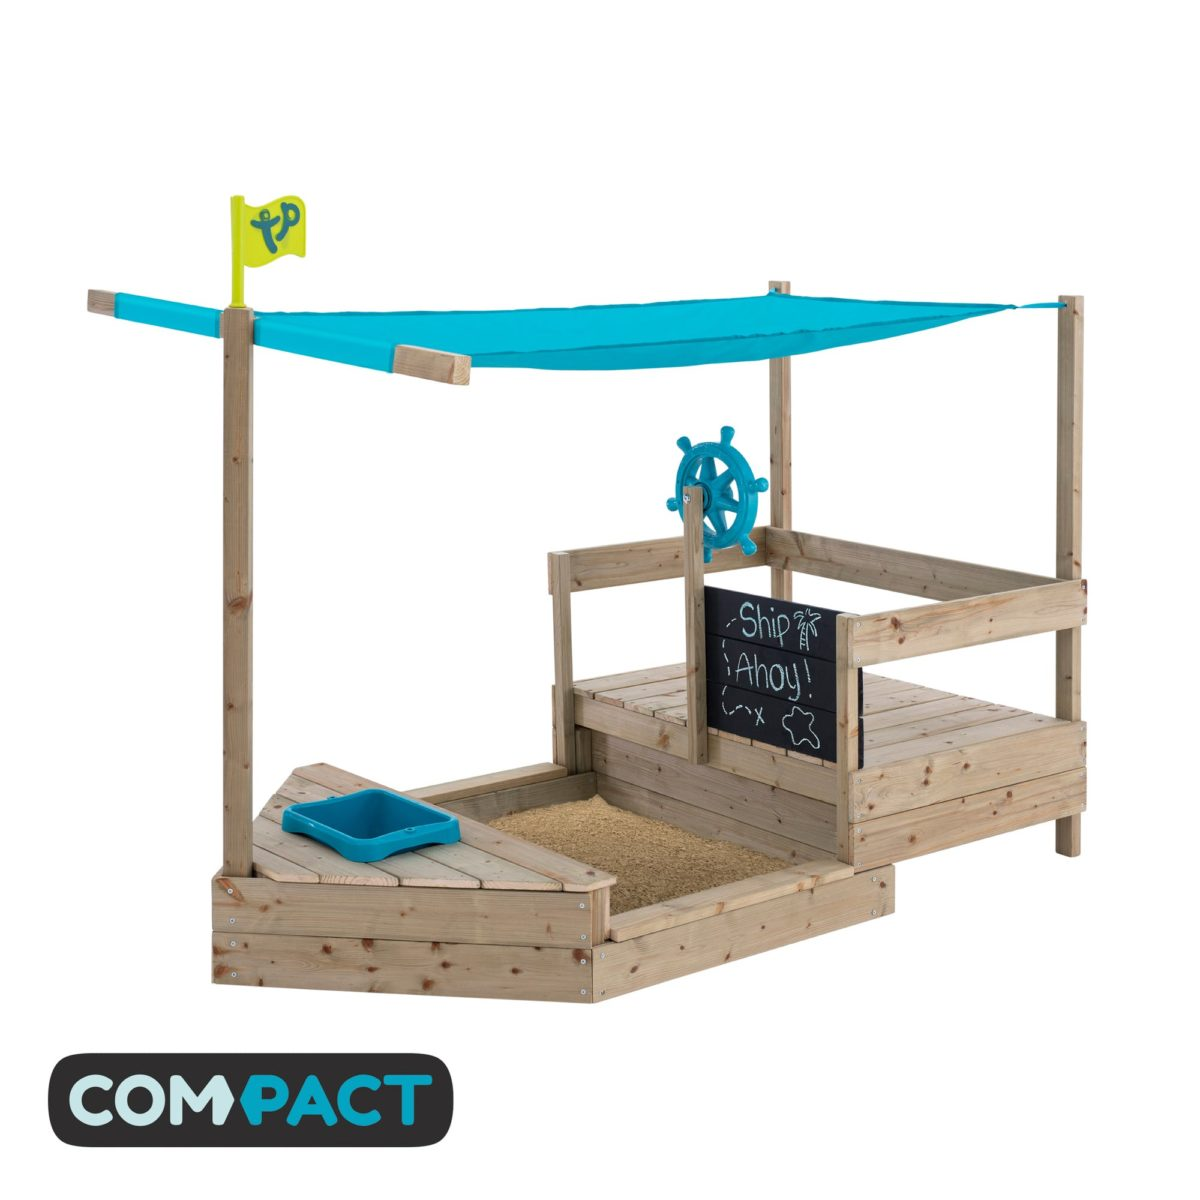 Tp Ahoy Wooden Play Boat – Fsc? Certified